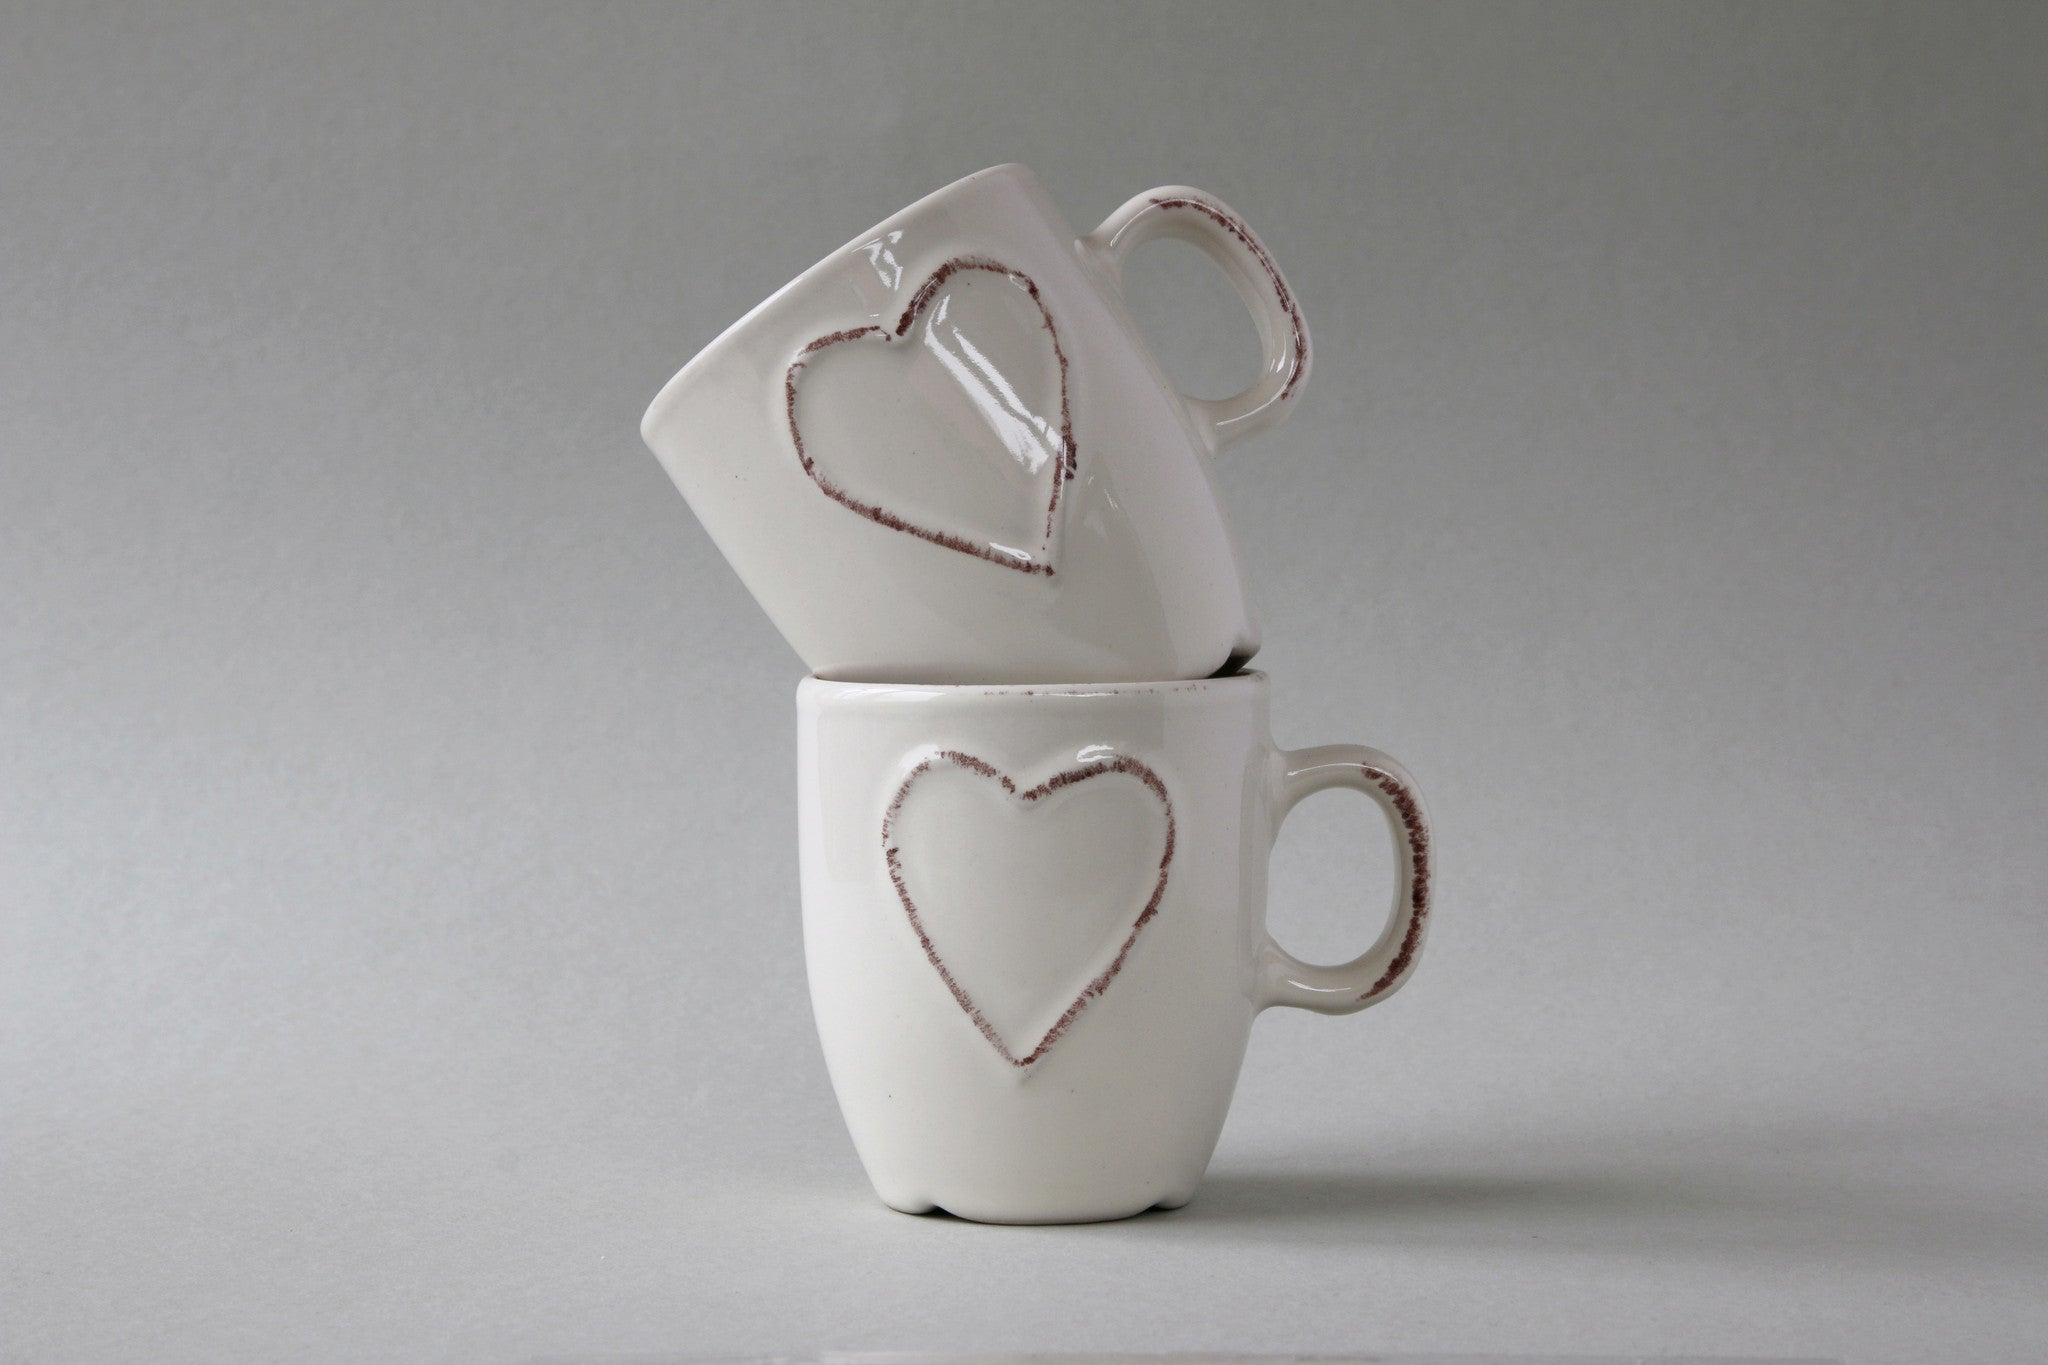 A pair of double espresso mugs in chalky white